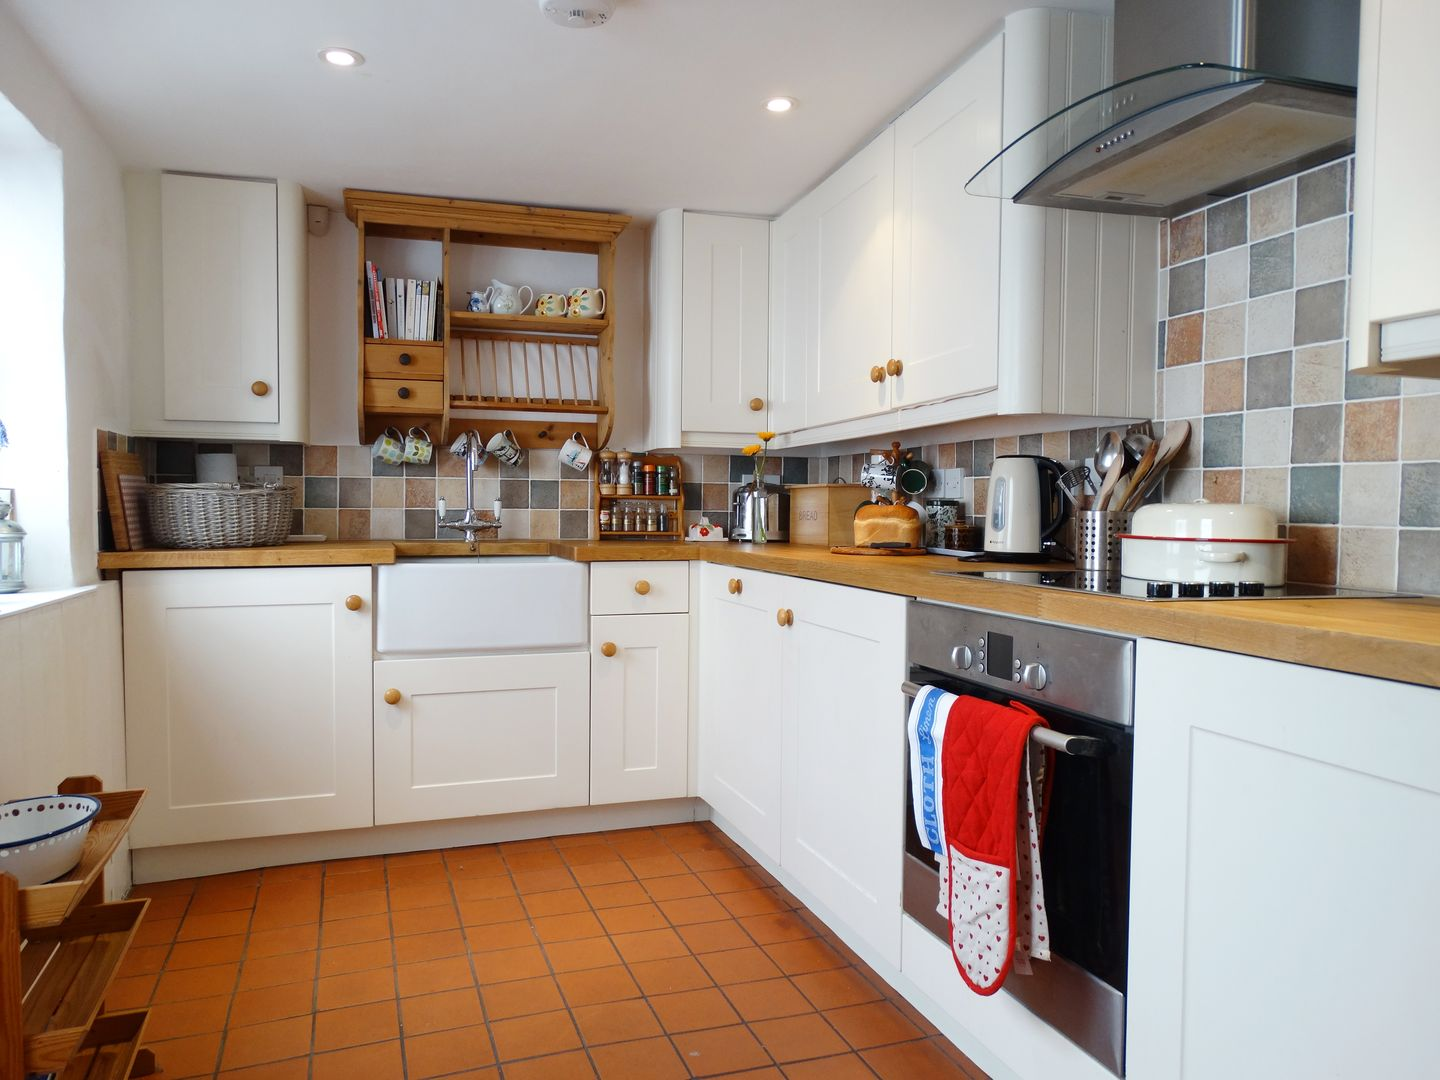 24 Victoria Road Topsham Modern Kitchen